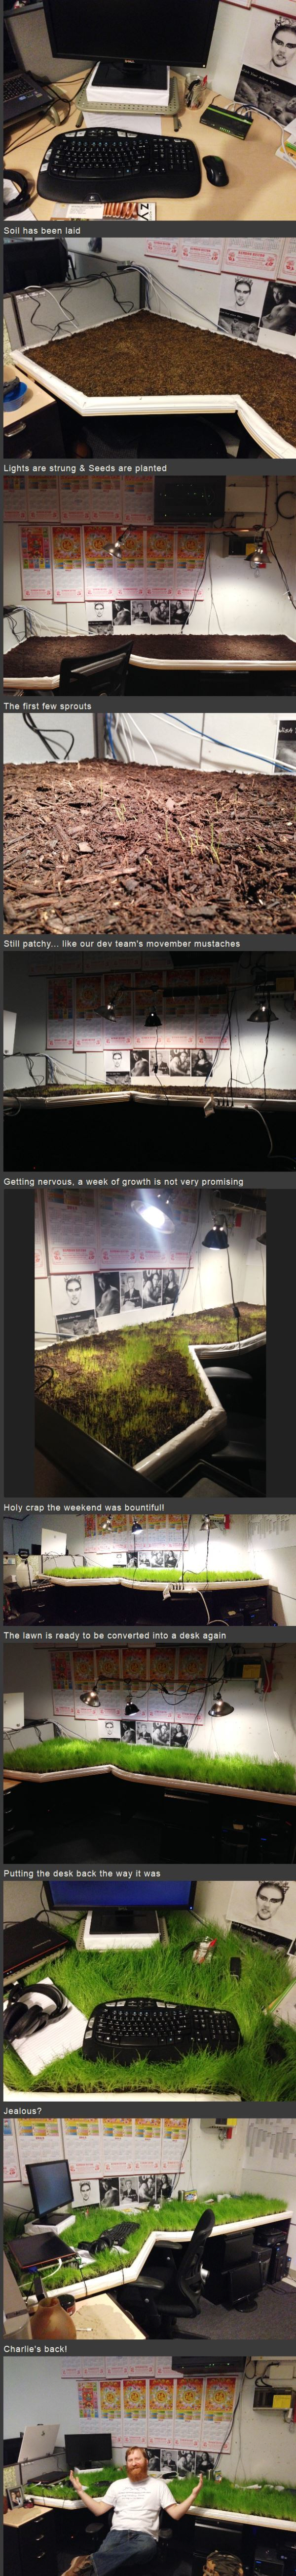 Genius Pranks Grass Office